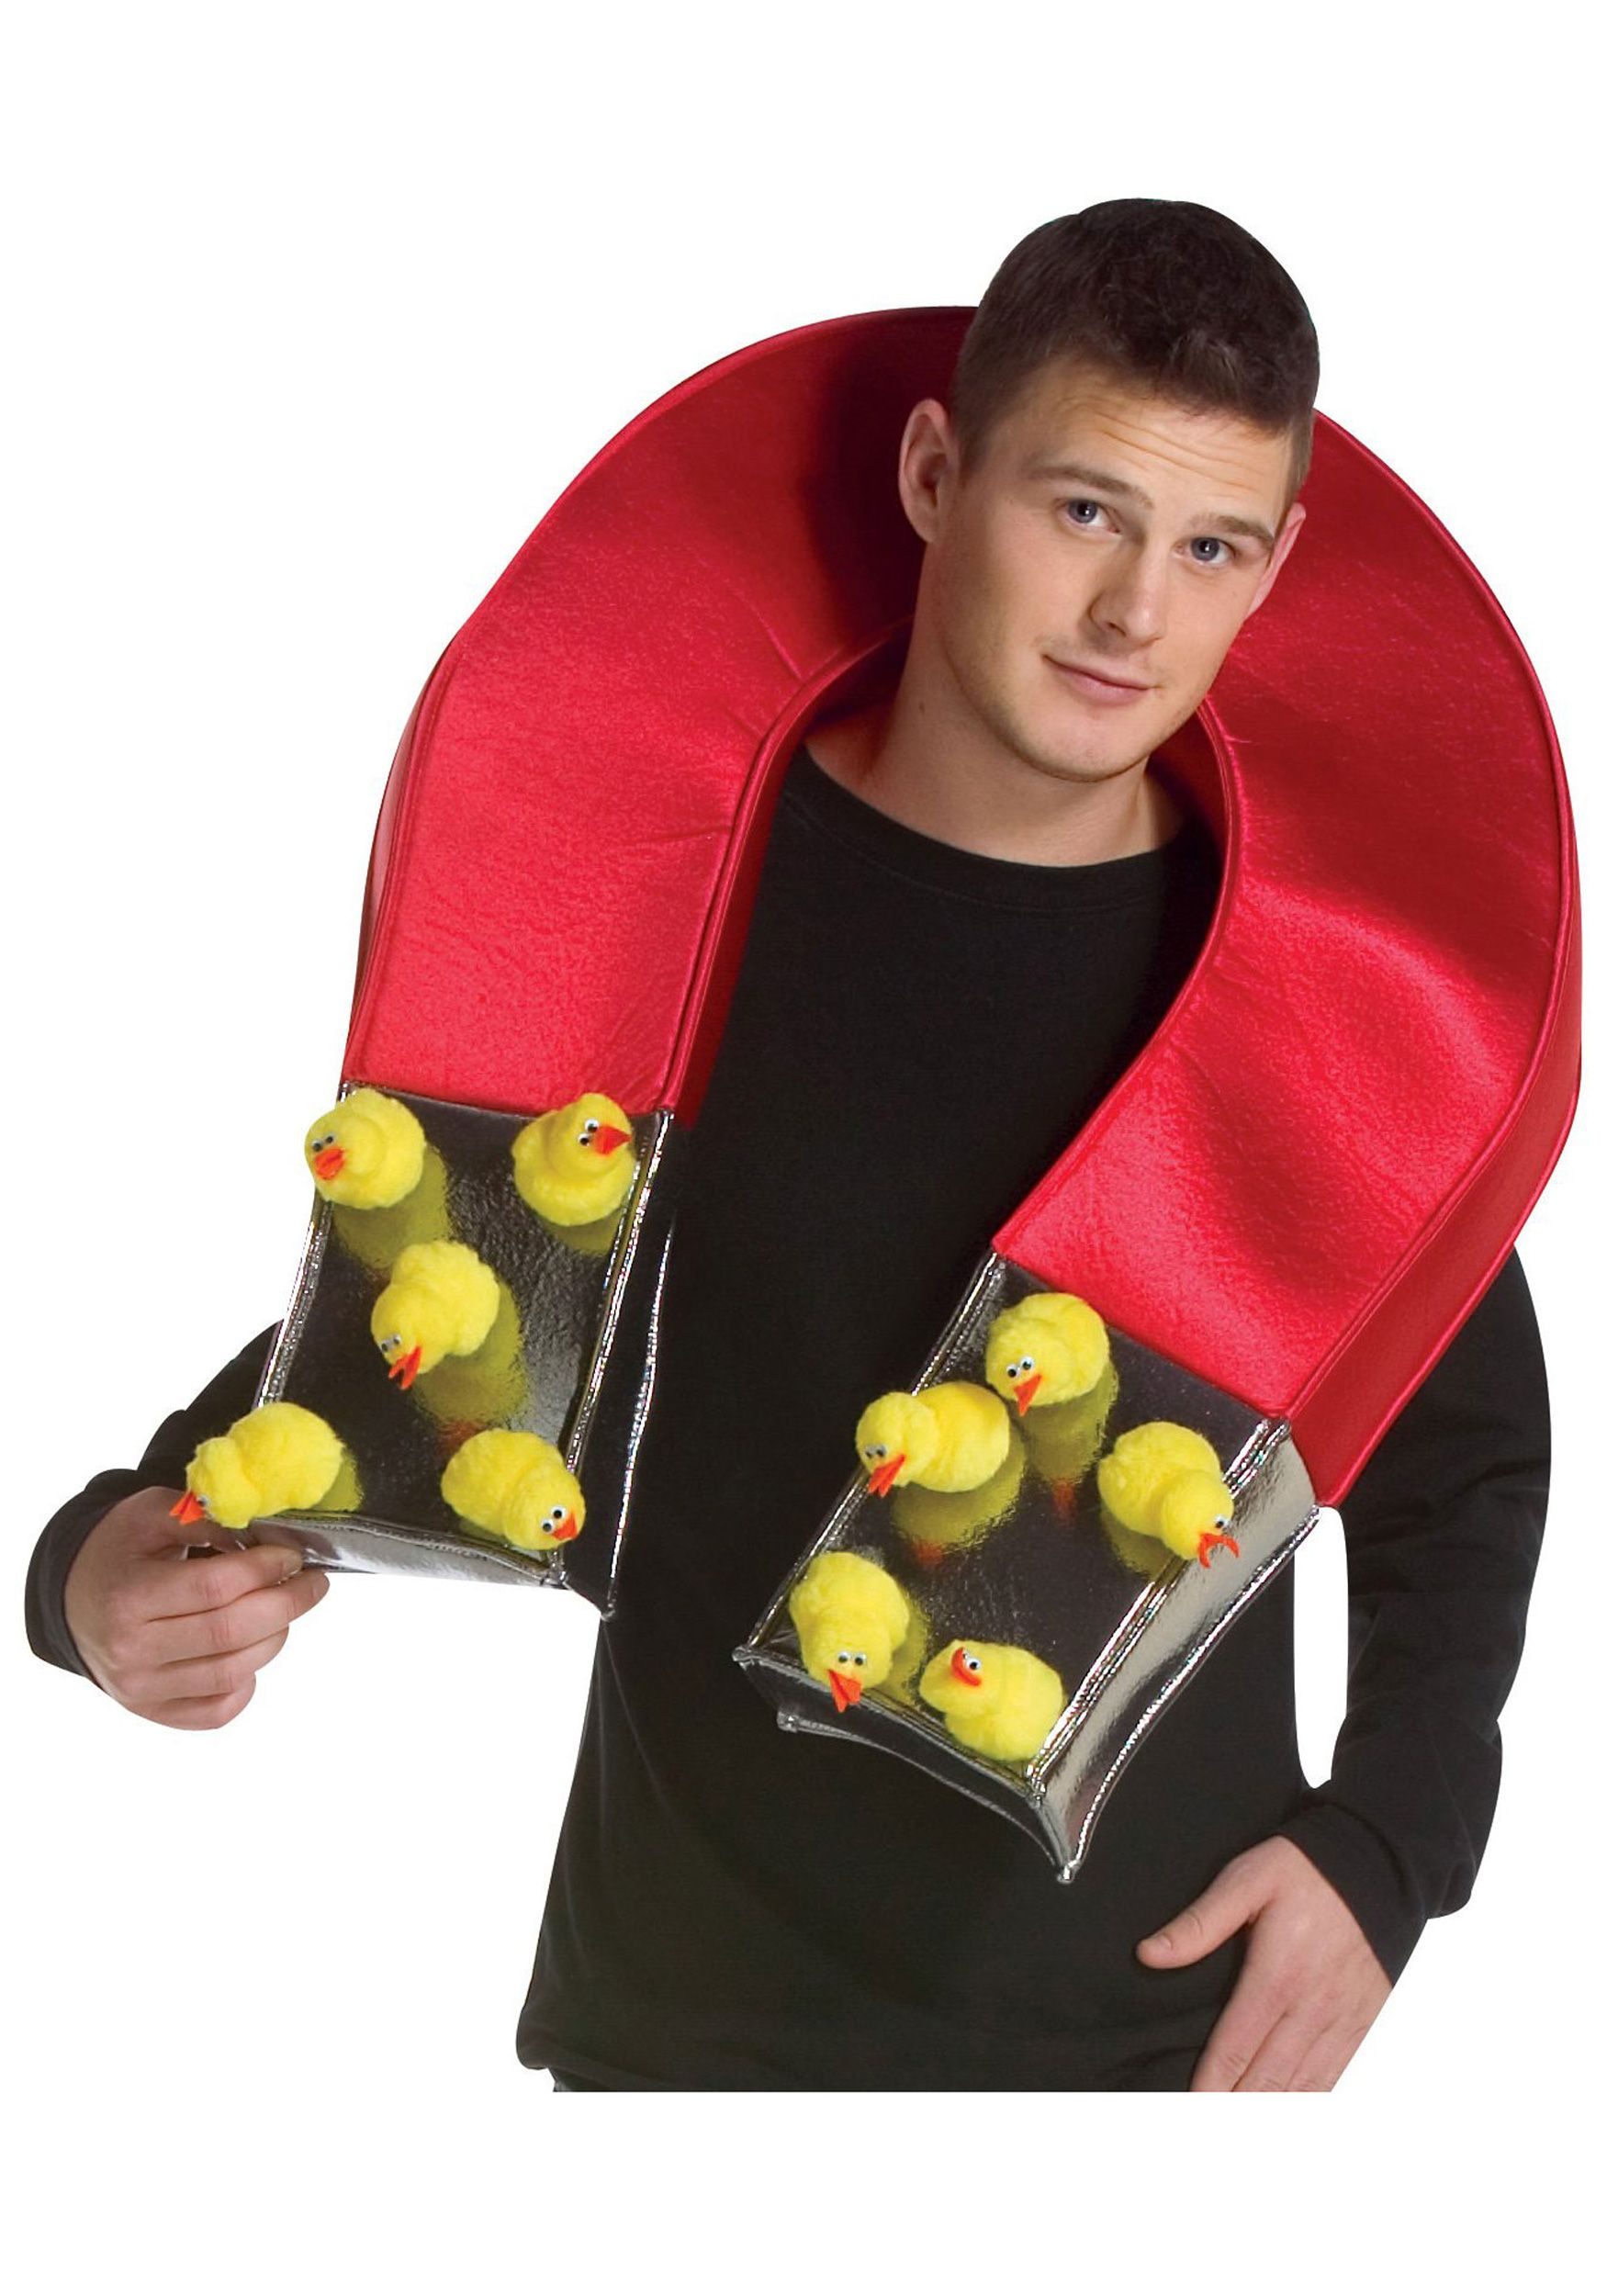 15 Halloween Costumes For Men That Will Make You Face Palm